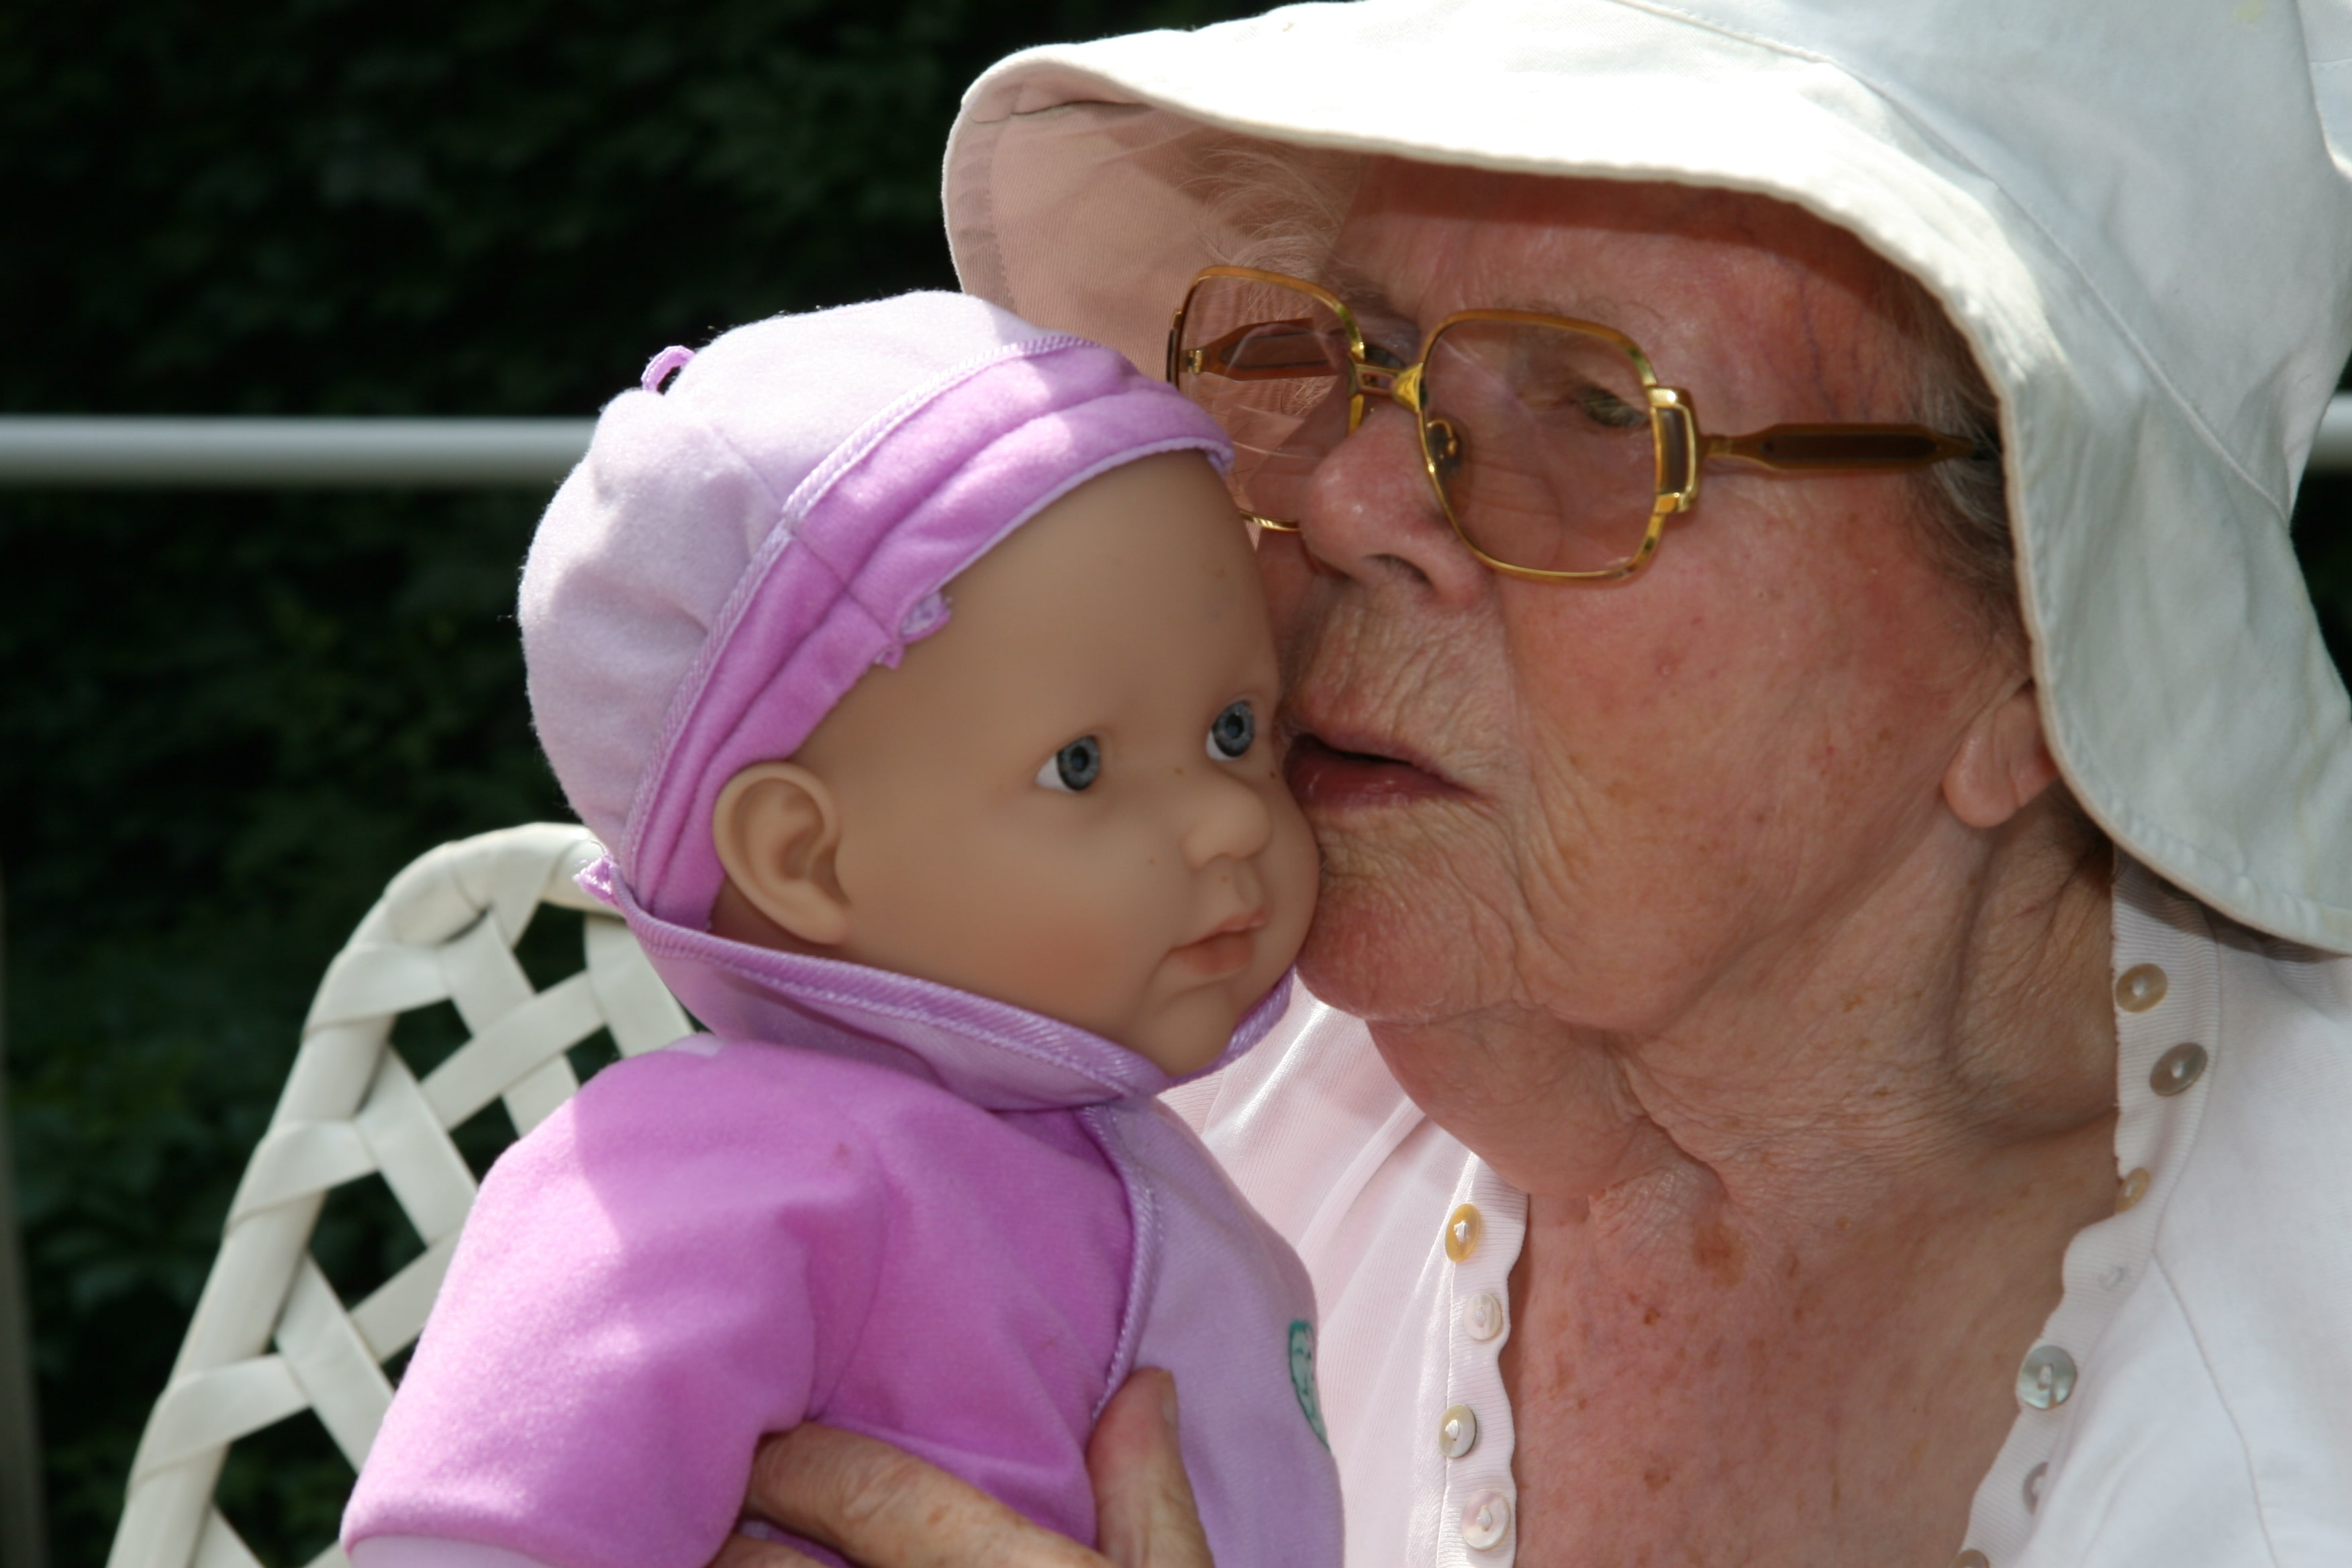 The-use-of-dolls-in-dementia-care